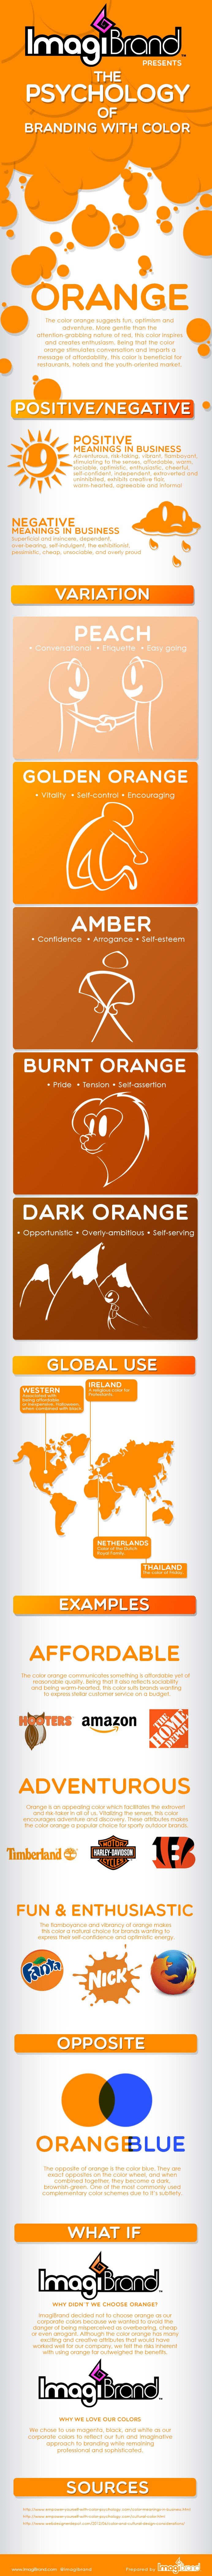 The Psychology of Orange Branding [infographic]